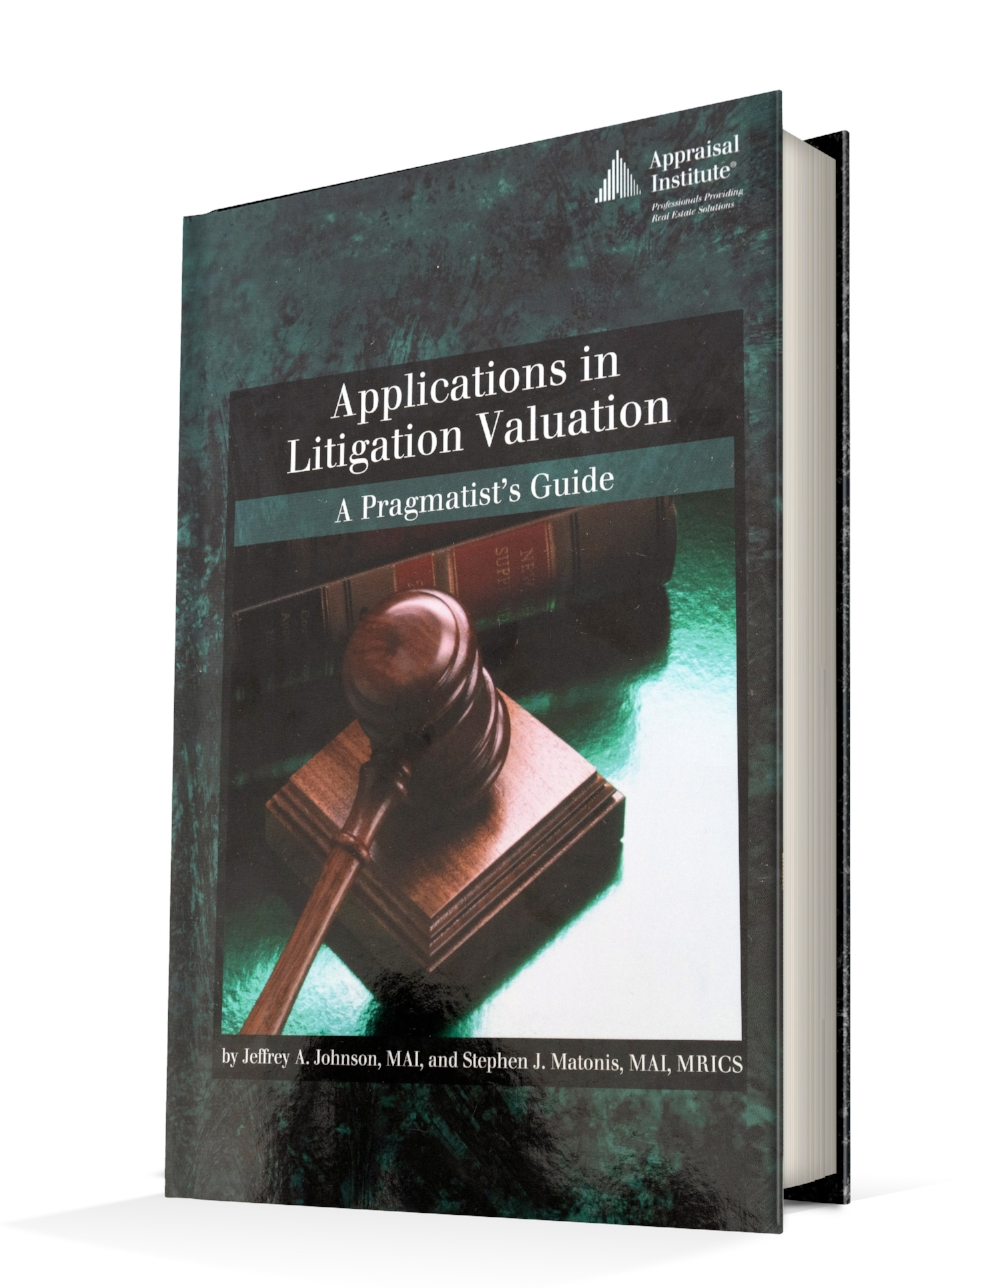 Applications in Litigation Valuation: A Pragmatist's Guide - Randall Bell, PhD, MAI, Contributing AuthorLitigation valuation is a fascinating discipline that offers a wide range of opportunities to qualified real property appraisers. Whether you are new to litigation valuation or have experience but want to expand your practice, Applications in Litigation Valuation: A Pragmatist's Guide is for you. The text presents basic instruction on tackling tough valuation assignments and real-world examples of appraisers in action. The book provides an overview of the fundamentals of litigation appraisal beginning with a discussion of the appraiser's engagement, execution of the assignment, and expert testimony.